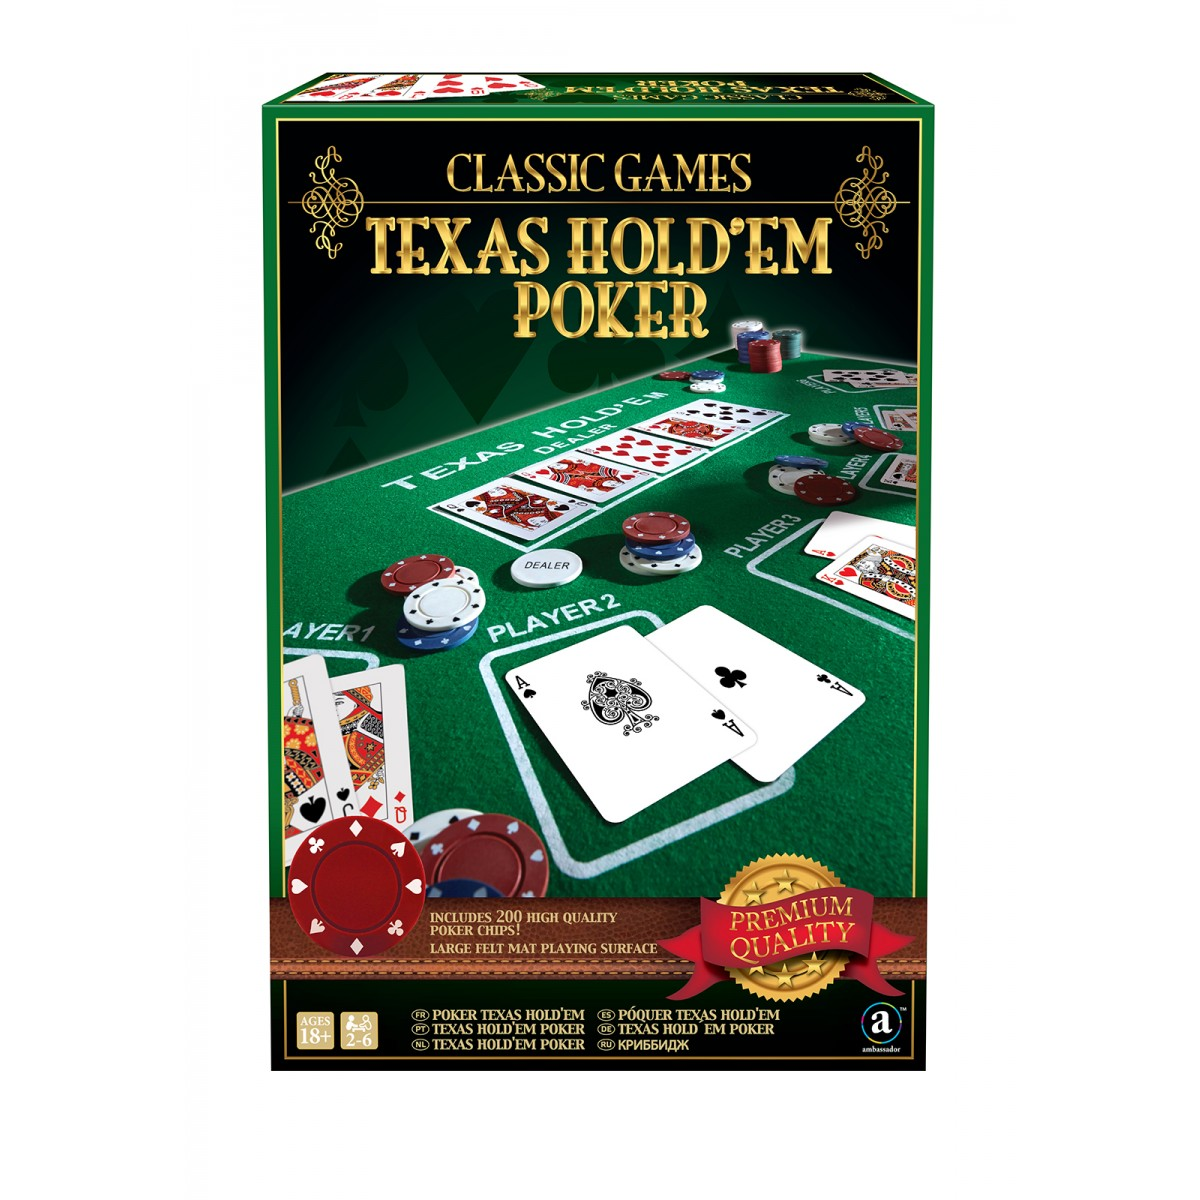 Twin river casino texas holdem